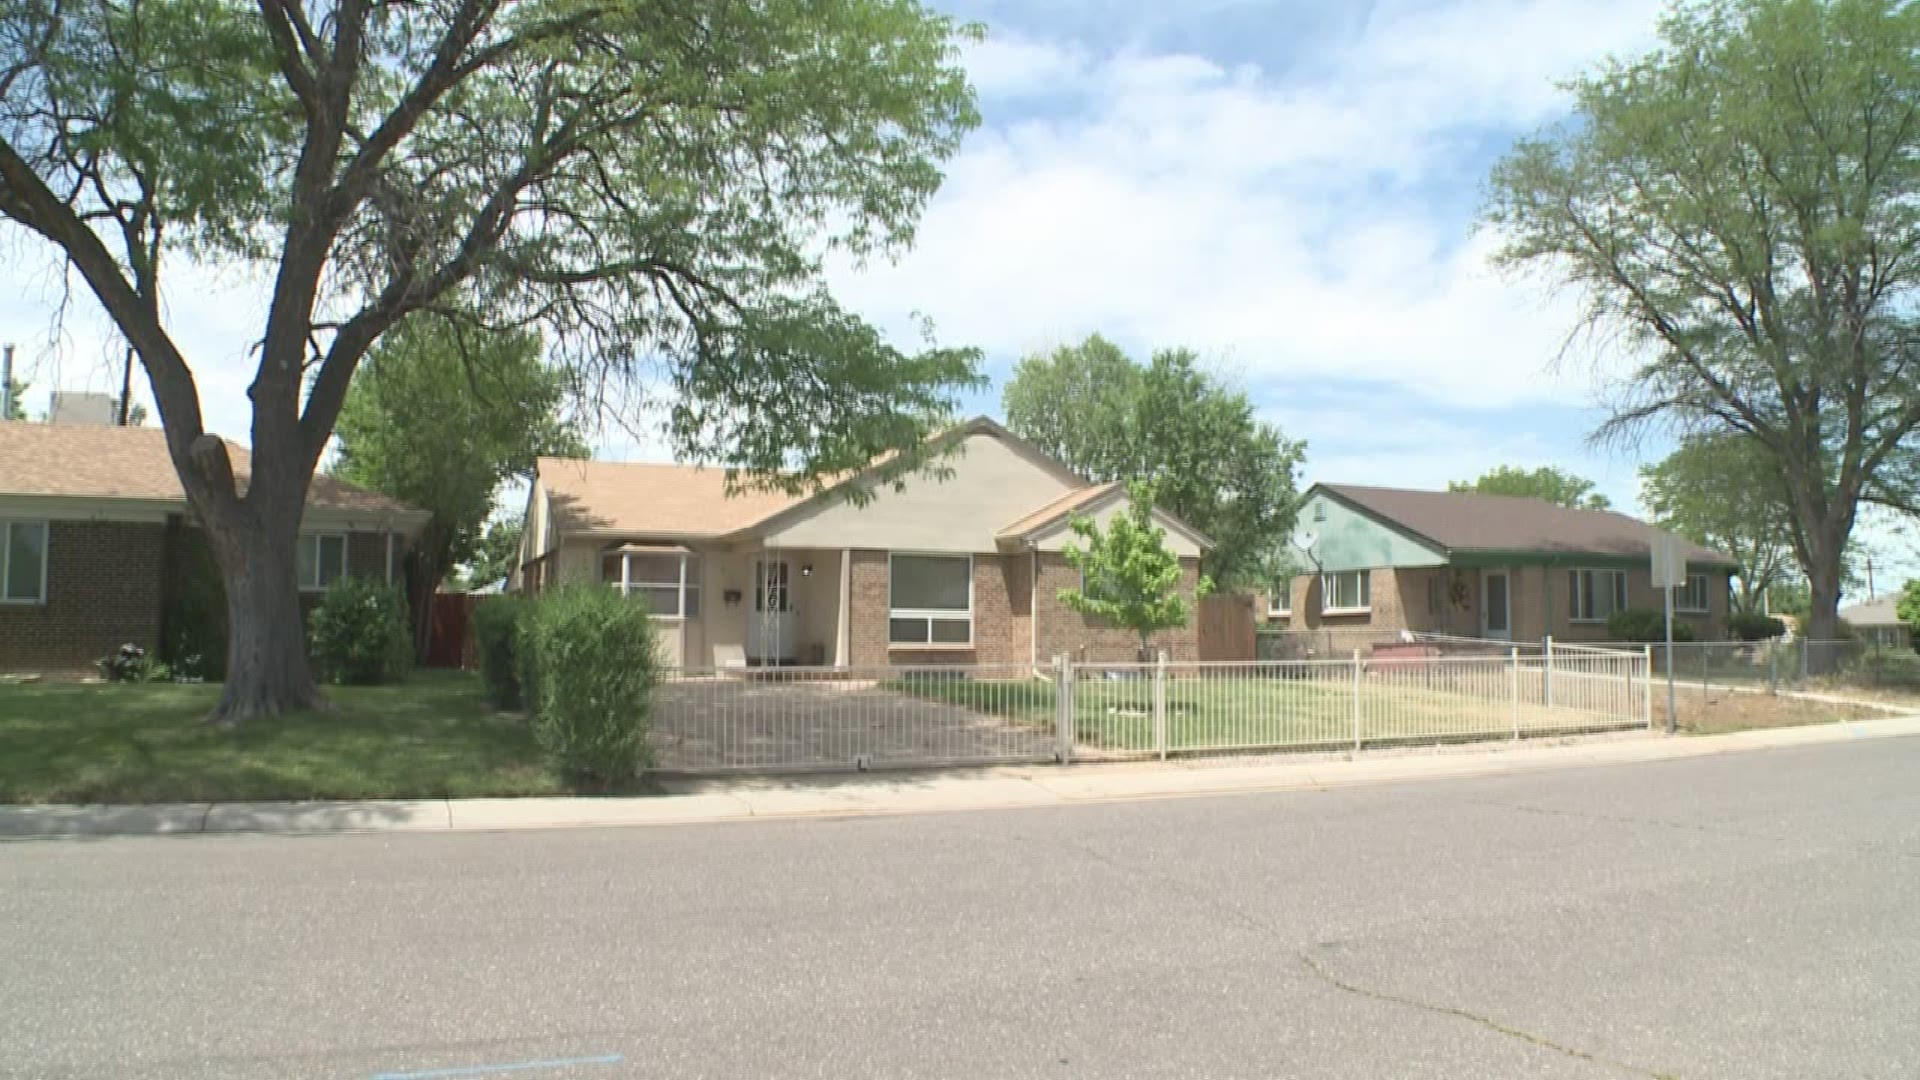 Denver Homeowner S House Listed As For Rent On Craigslist And It S Definitely Not 9news Com